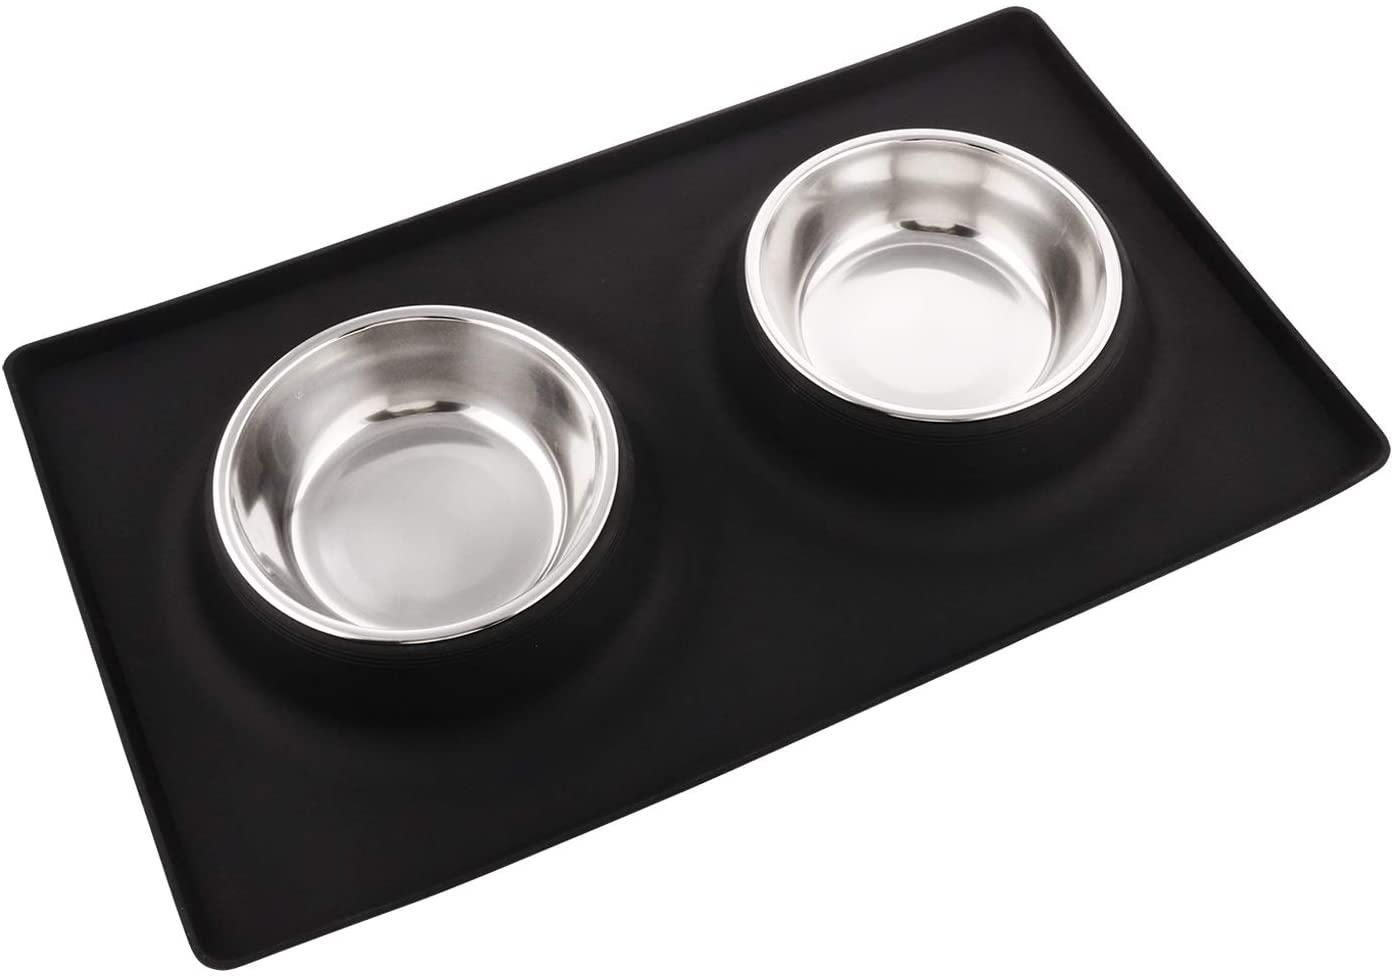 Dog Bowls, Stainless Steel Pet Food Bowl, Cat Water Bowls with No-Spill Silicone Mat for Medium or Dogs or Cats, Set of 2 Medium Bowls